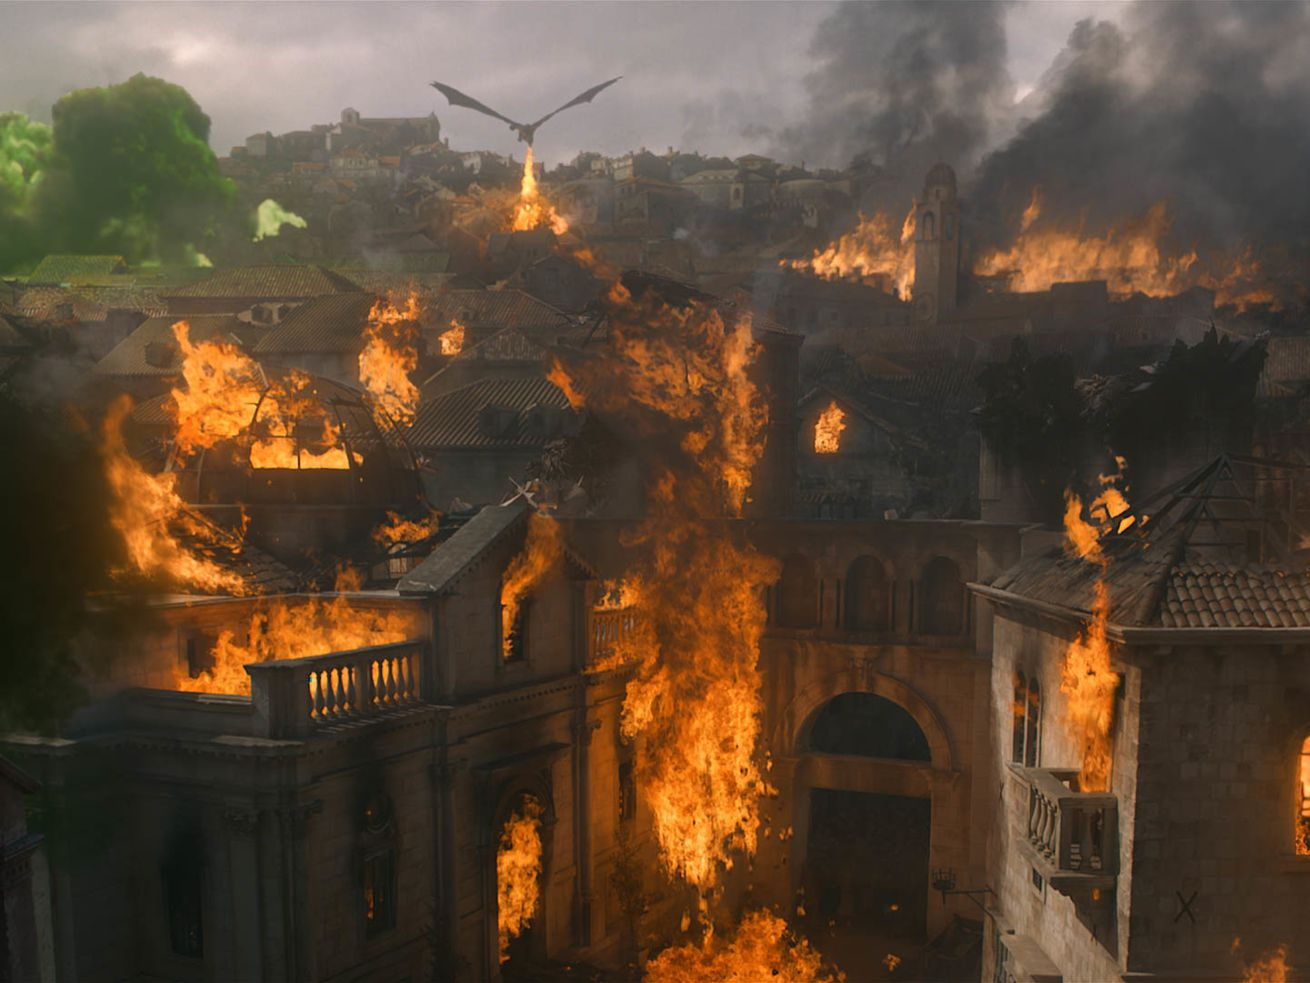 Daenerys unleashes her dragon on King's Landing — and reveals the series' endgame.